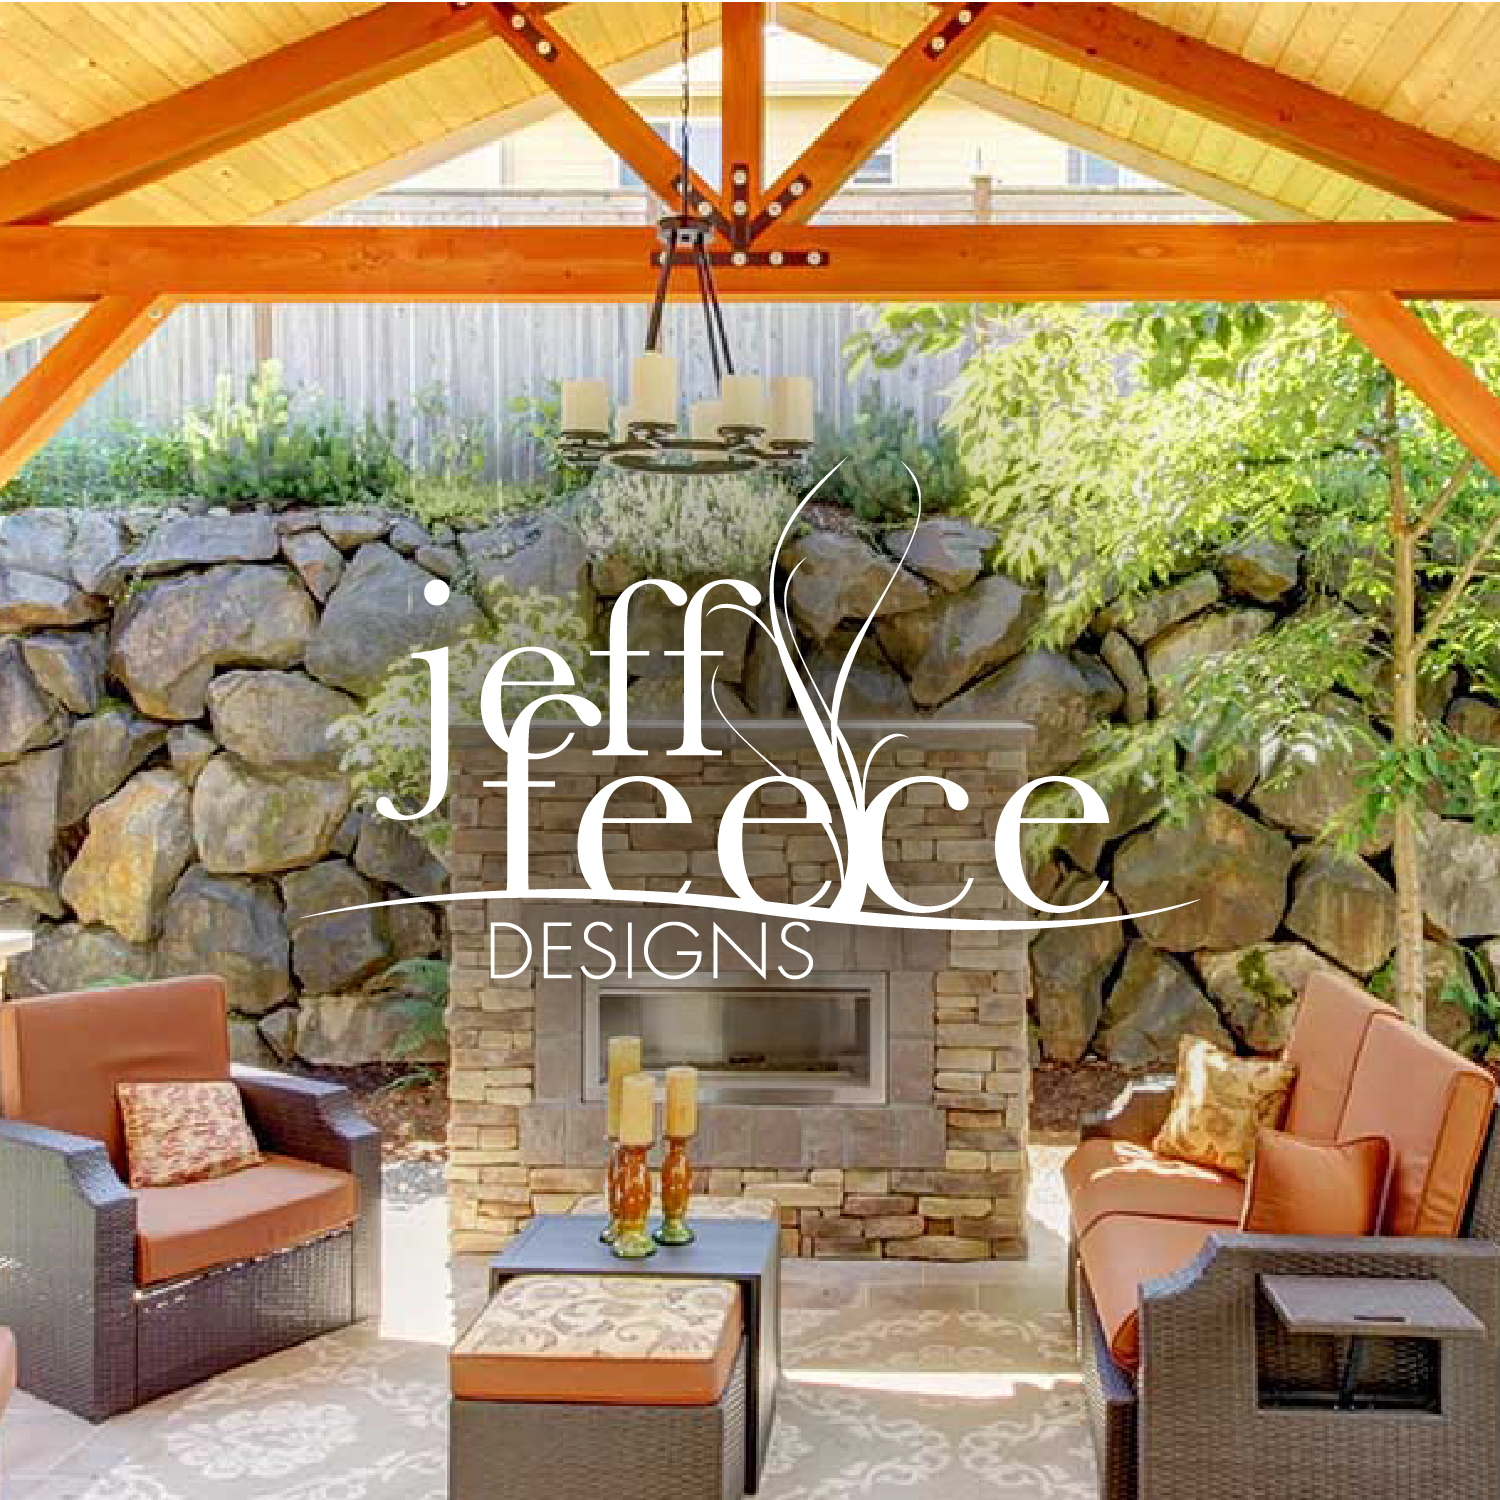 JEFF FEECE DESIGN    Marketing Strategy, Brand Identity, Website Design, Graphic Design, Print Management, Direct Mail &Local Search Engine Optimization    SEE THE WORK